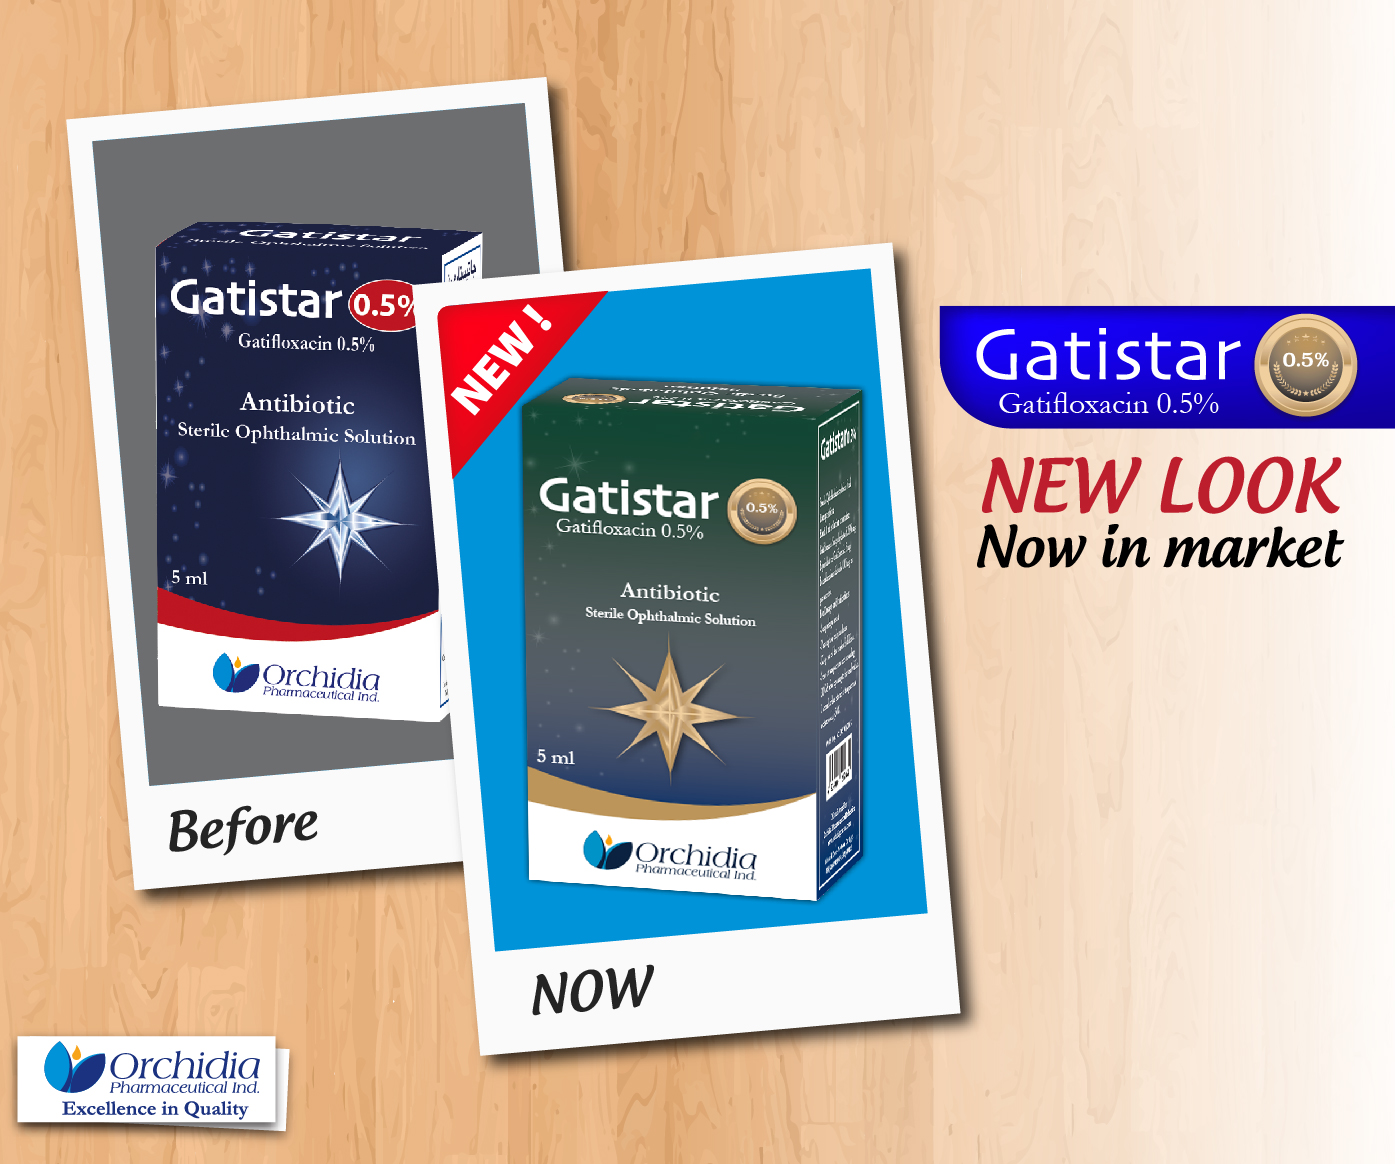 Gatistar 0.5%   new look